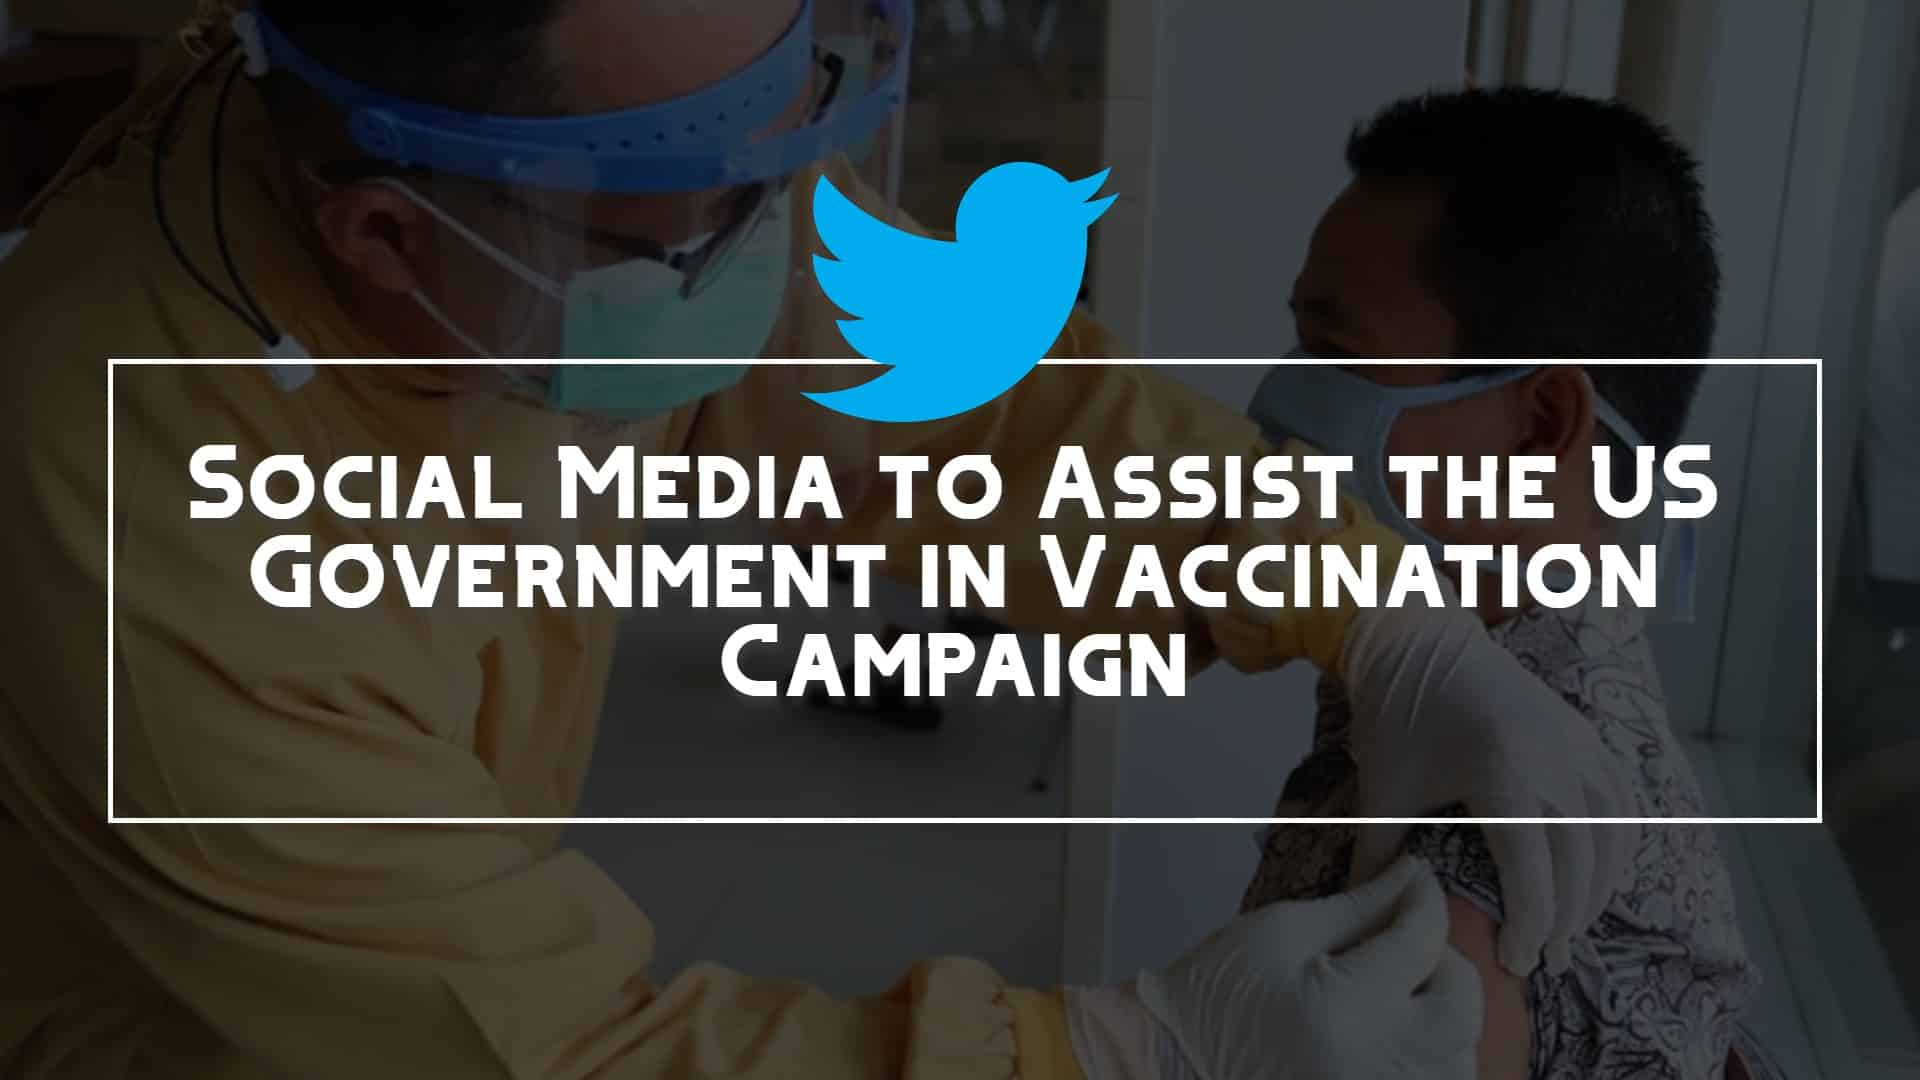 Social Media to Assist the US Government in Vaccination Campaign